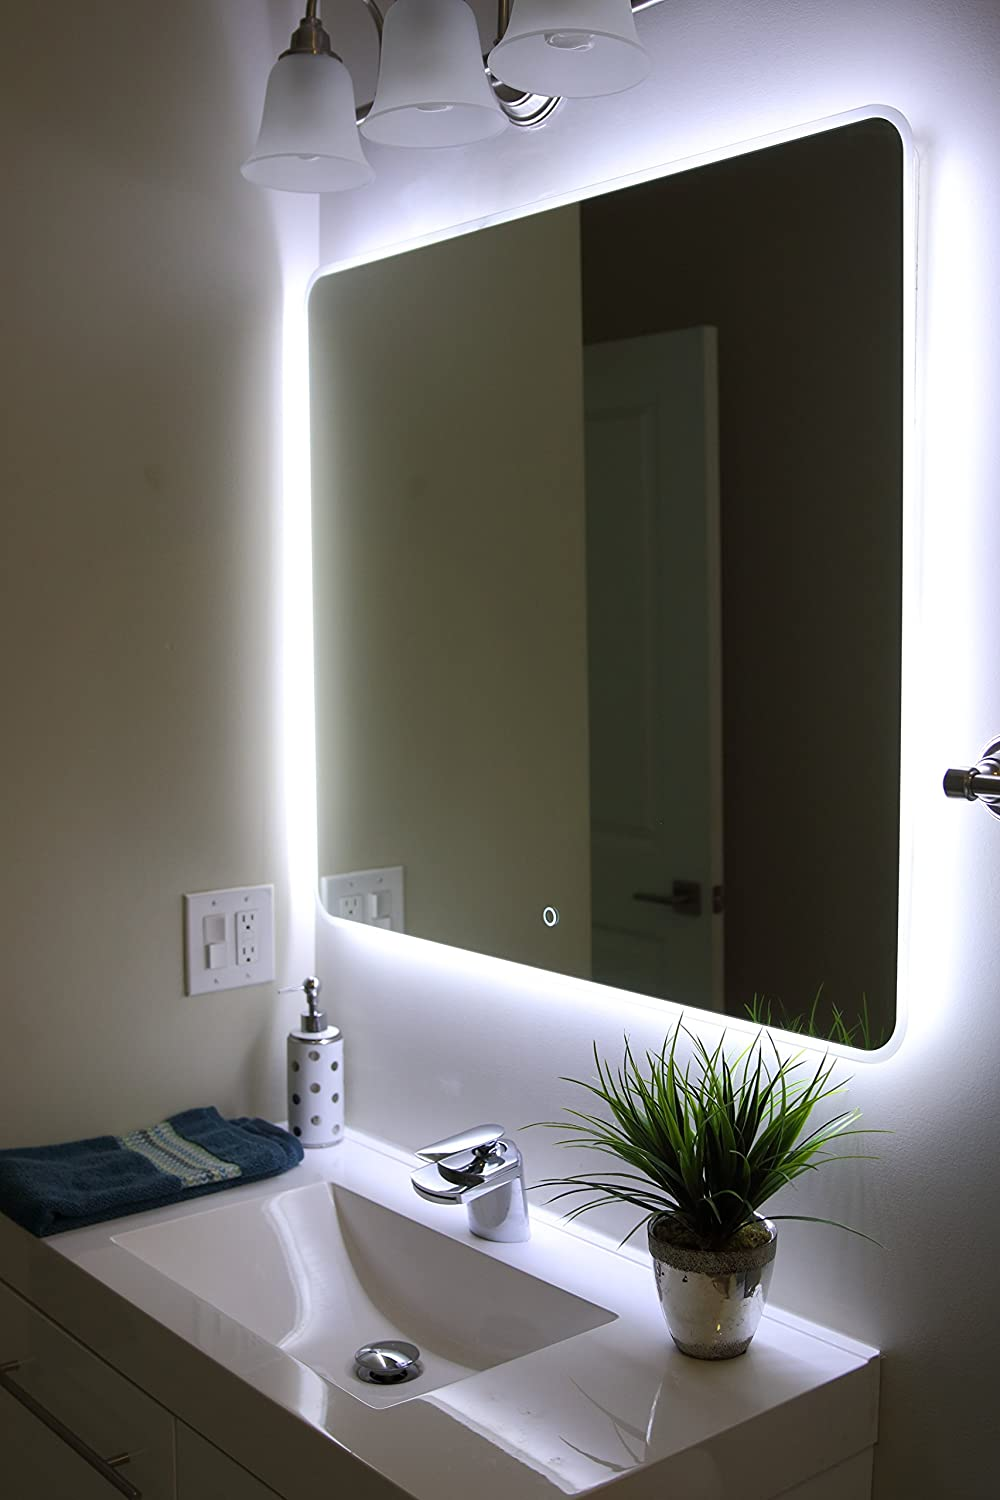 Amazoncom Windbay Backlit Led Light Bathroom Vanity Sink Mirror - Bathroom vanity mirror and light ideas